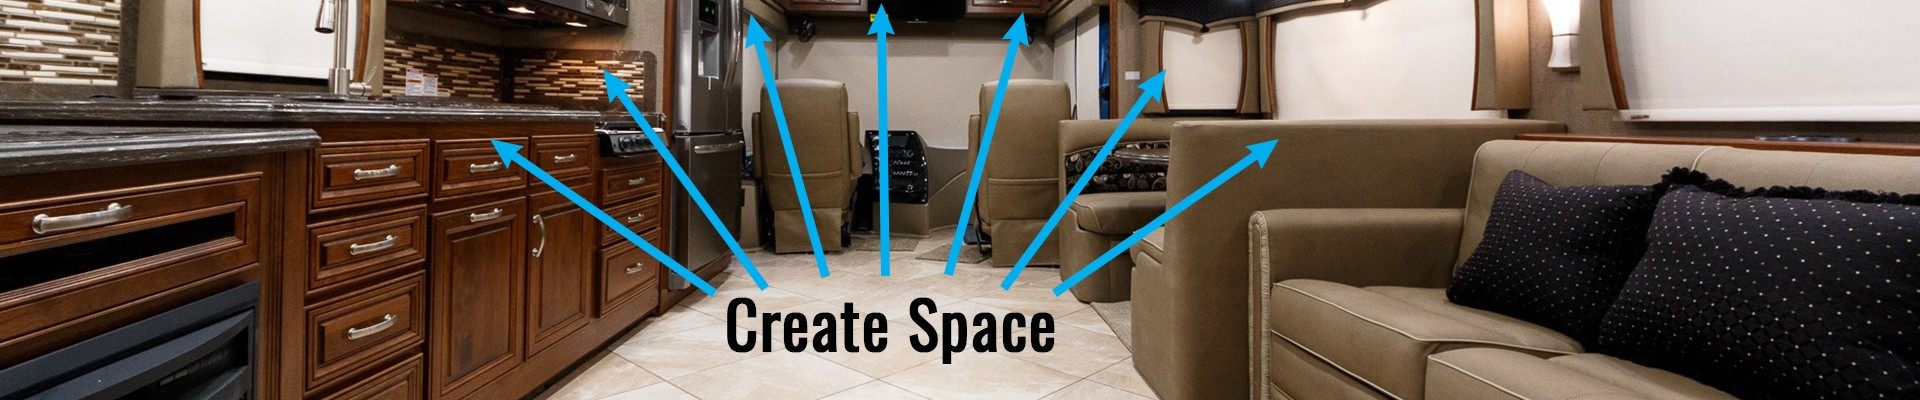 Rearrange the rooms in your RV to create space.